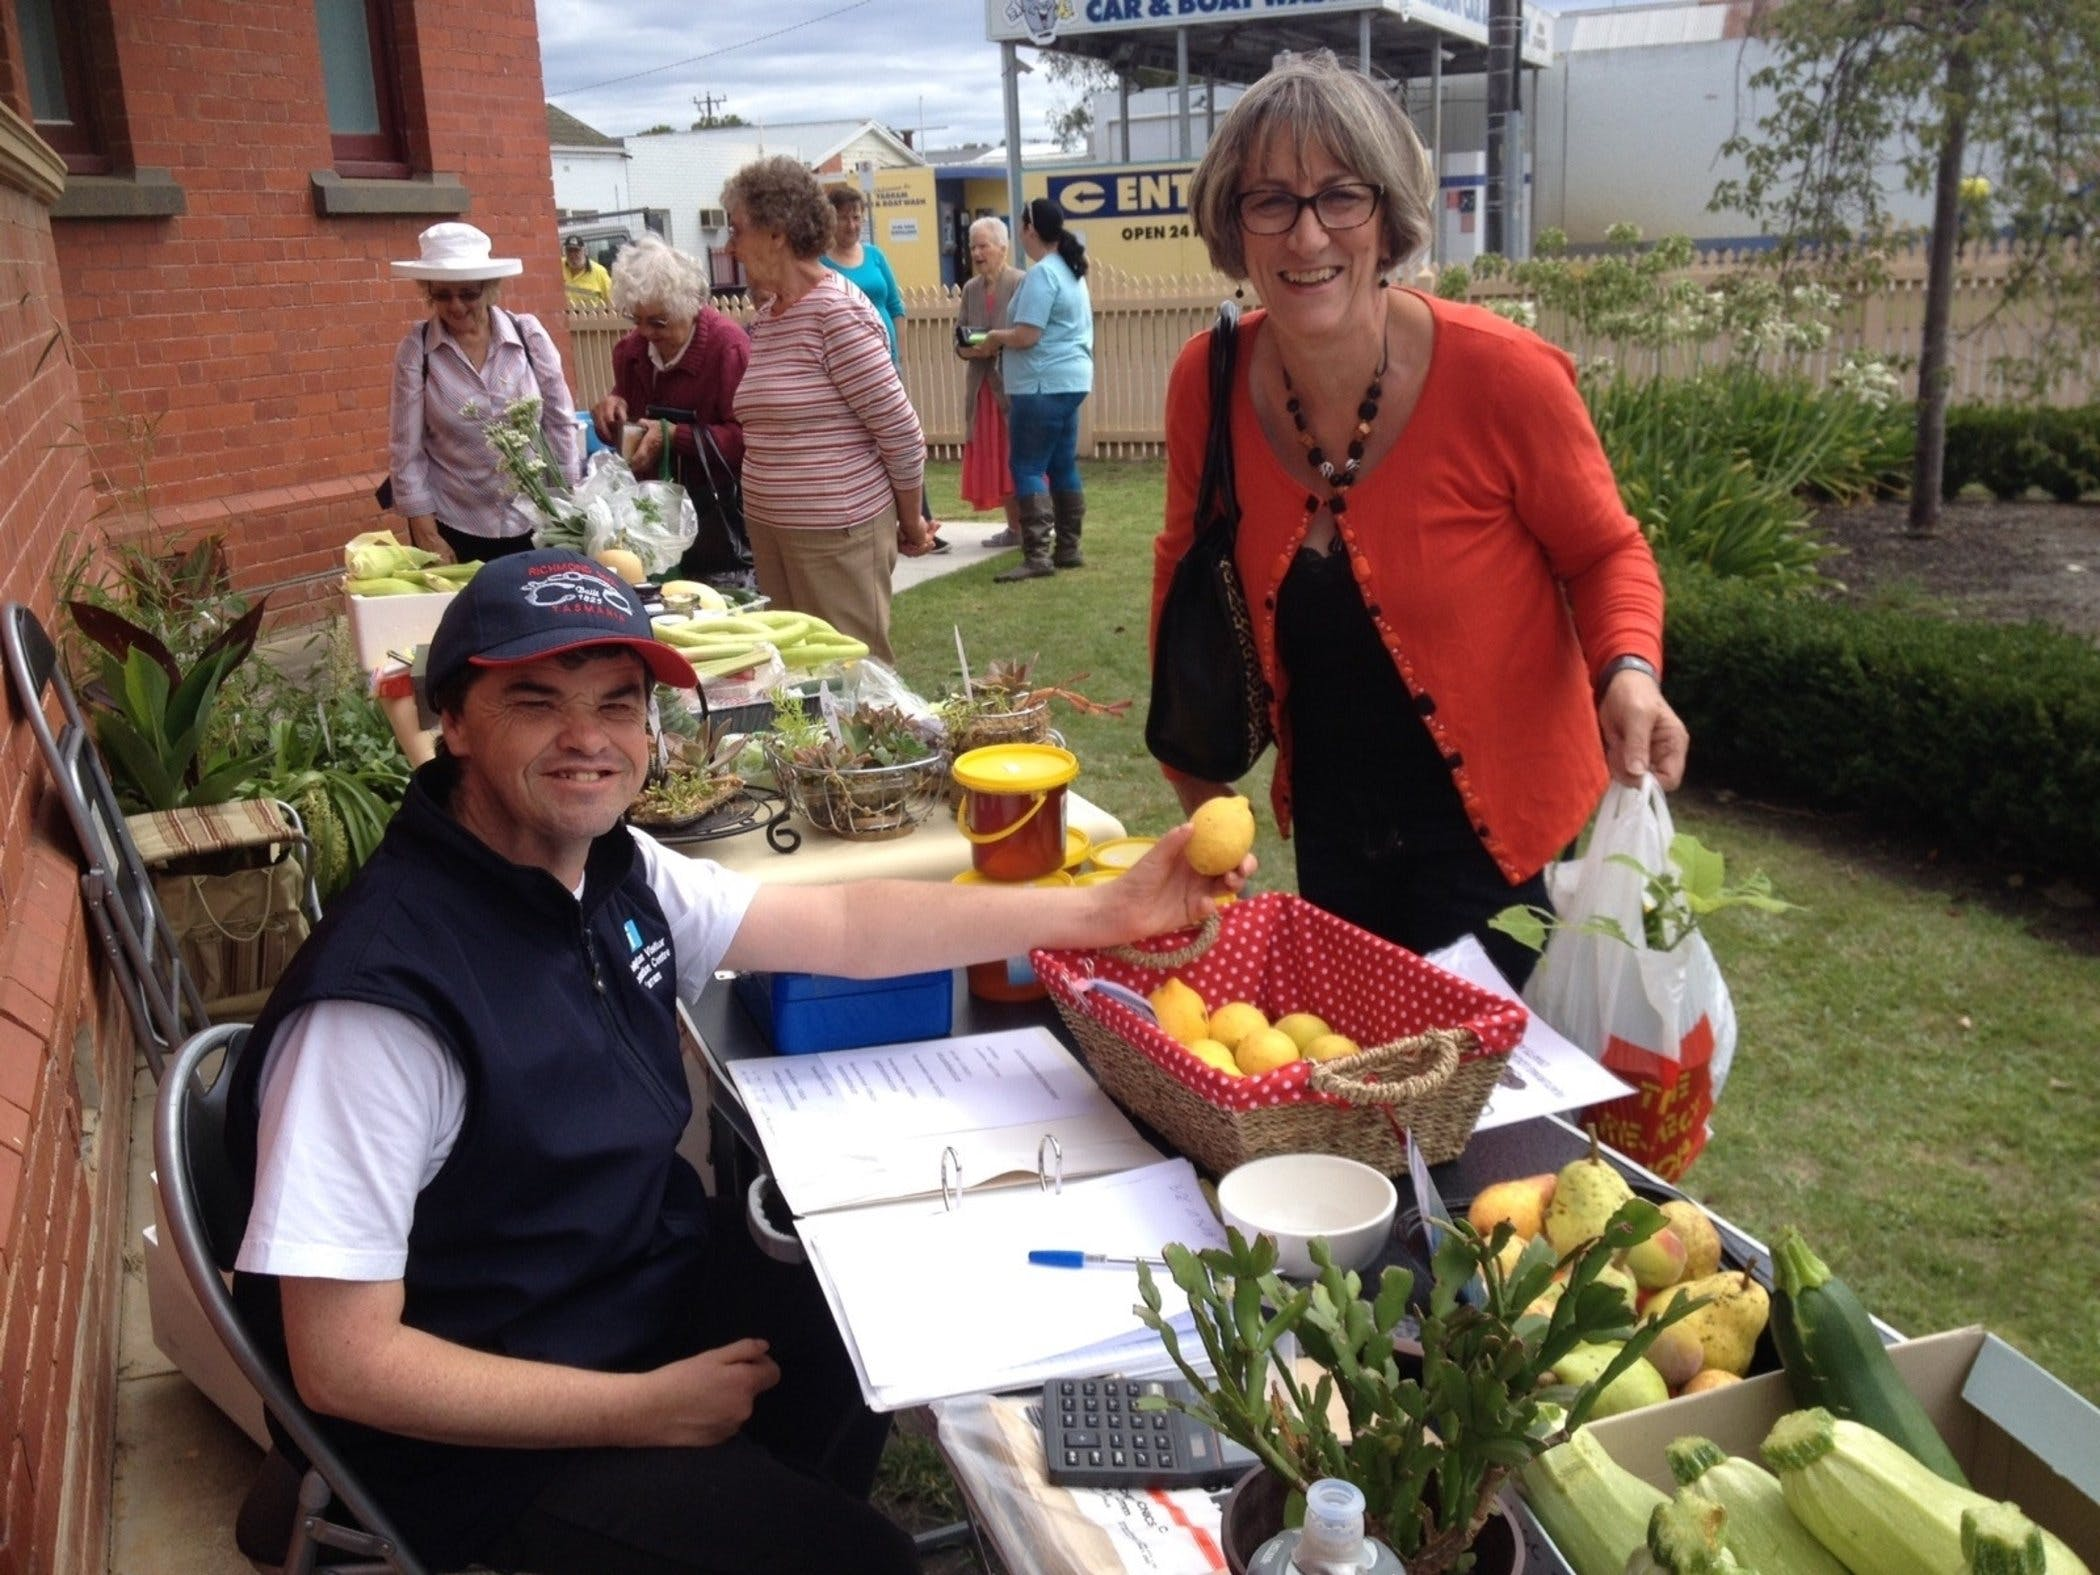 Yarram Courthouse Garden Produce Market - Accommodation Gold Coast